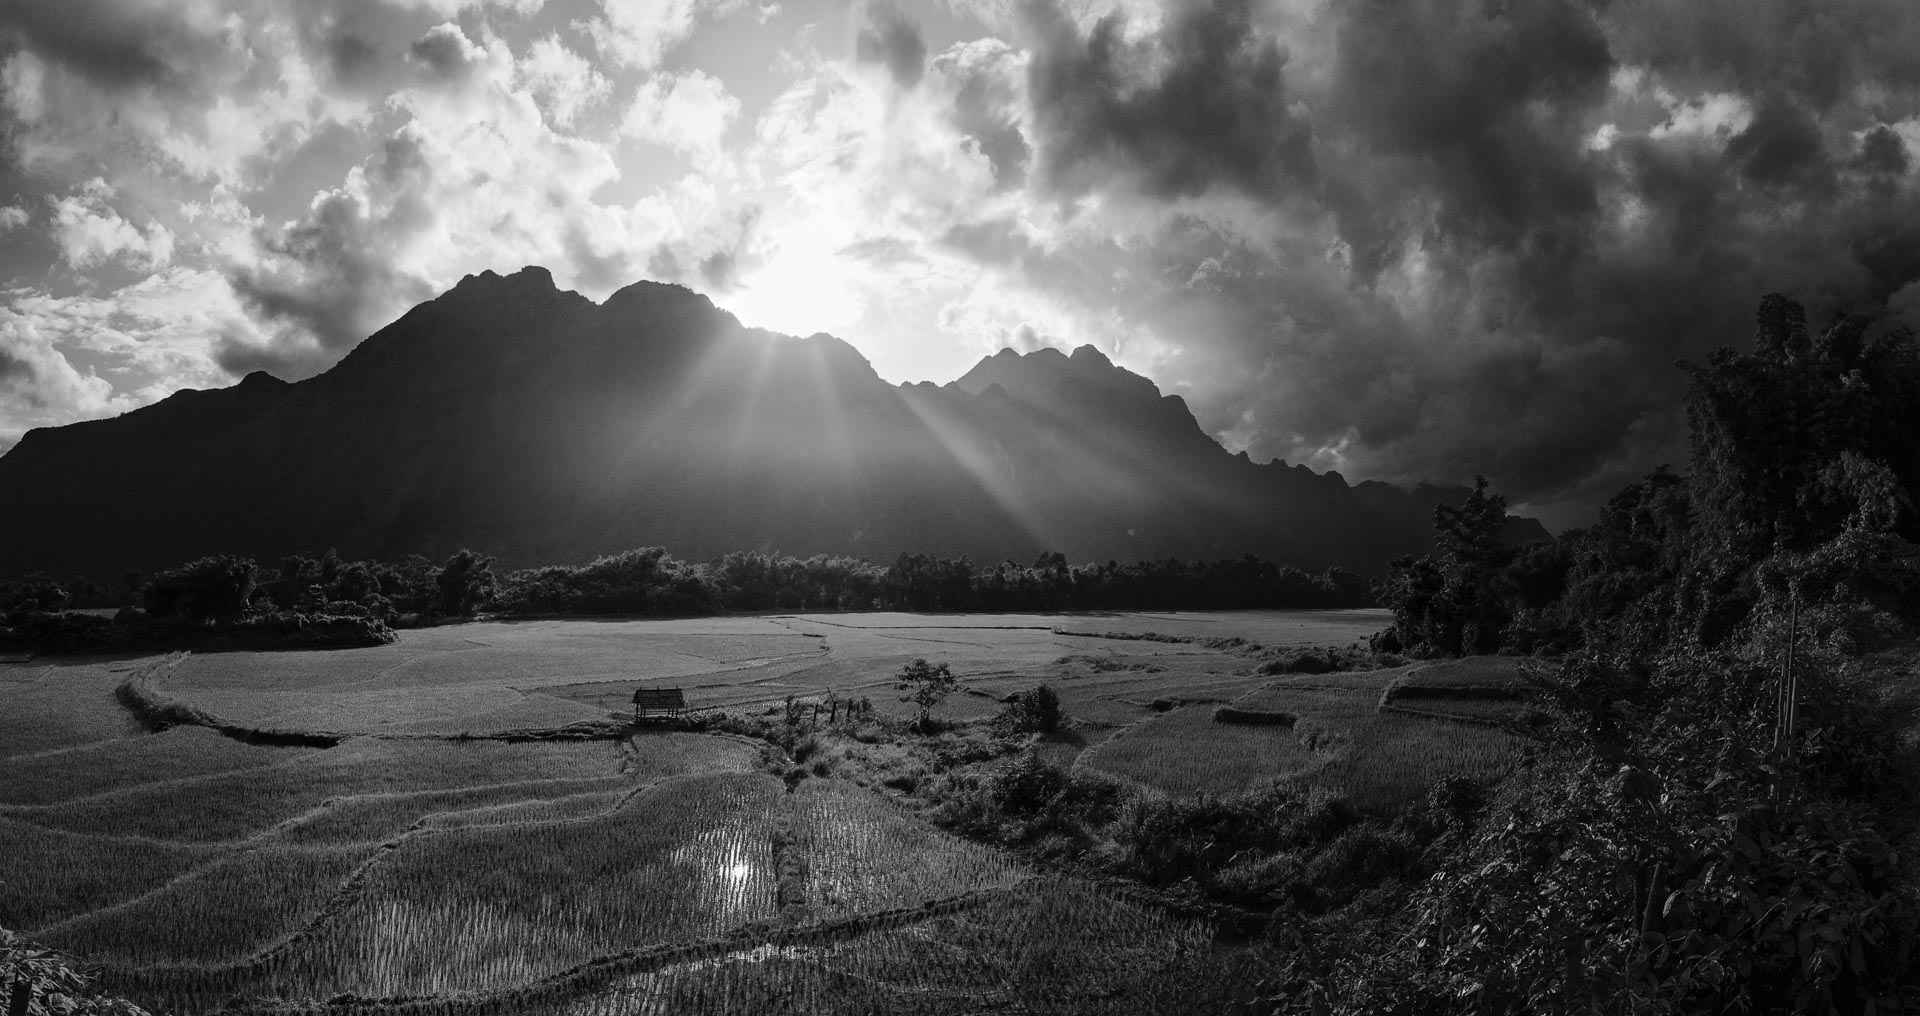 Rice paddies and mountains at sunset near Vang Vieng. Laos